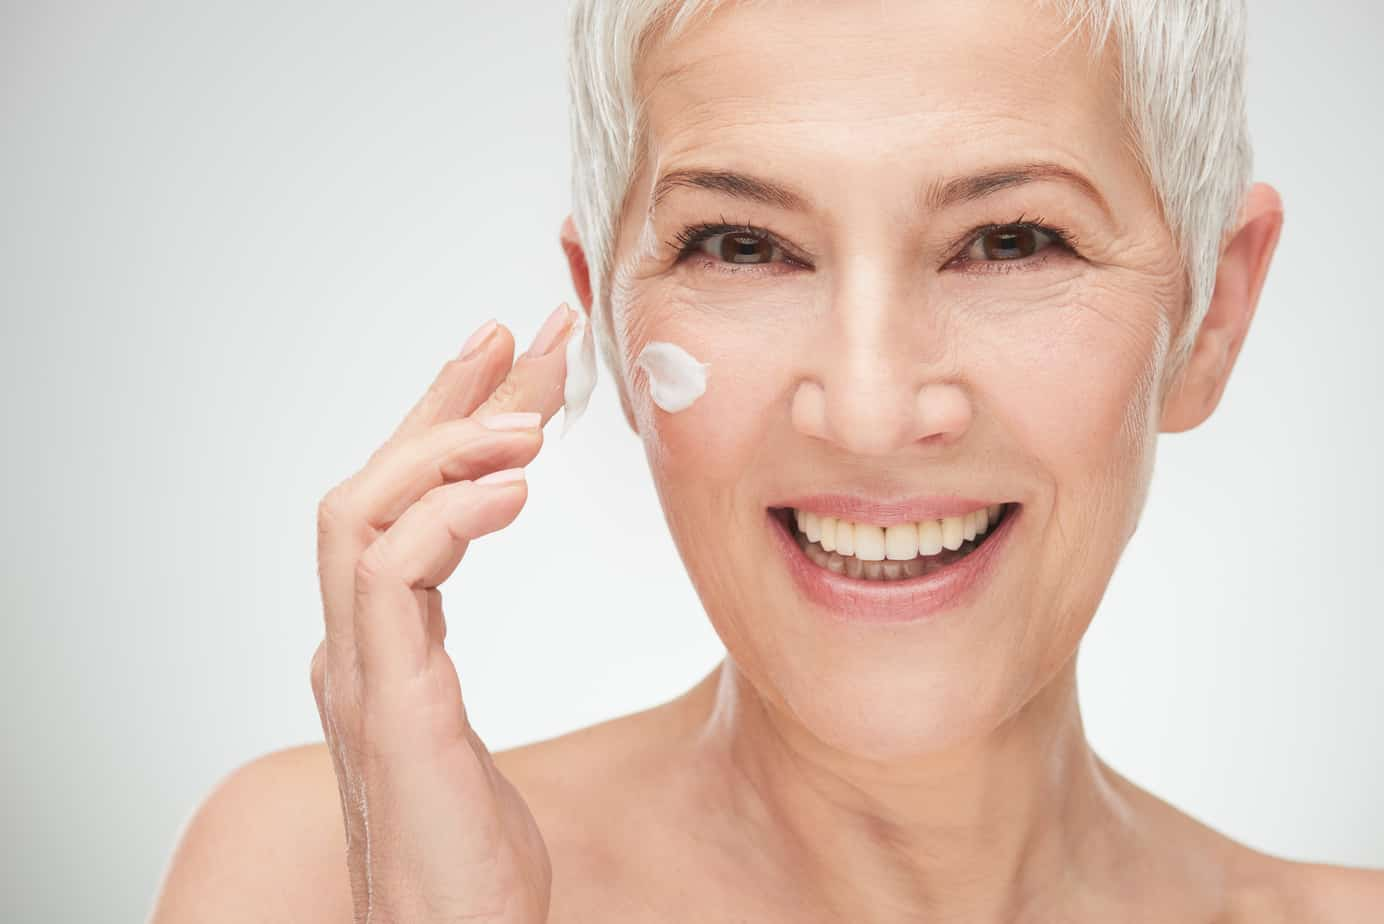 How to Get Rid of Wrinkles Under Your Eyes When You Smile